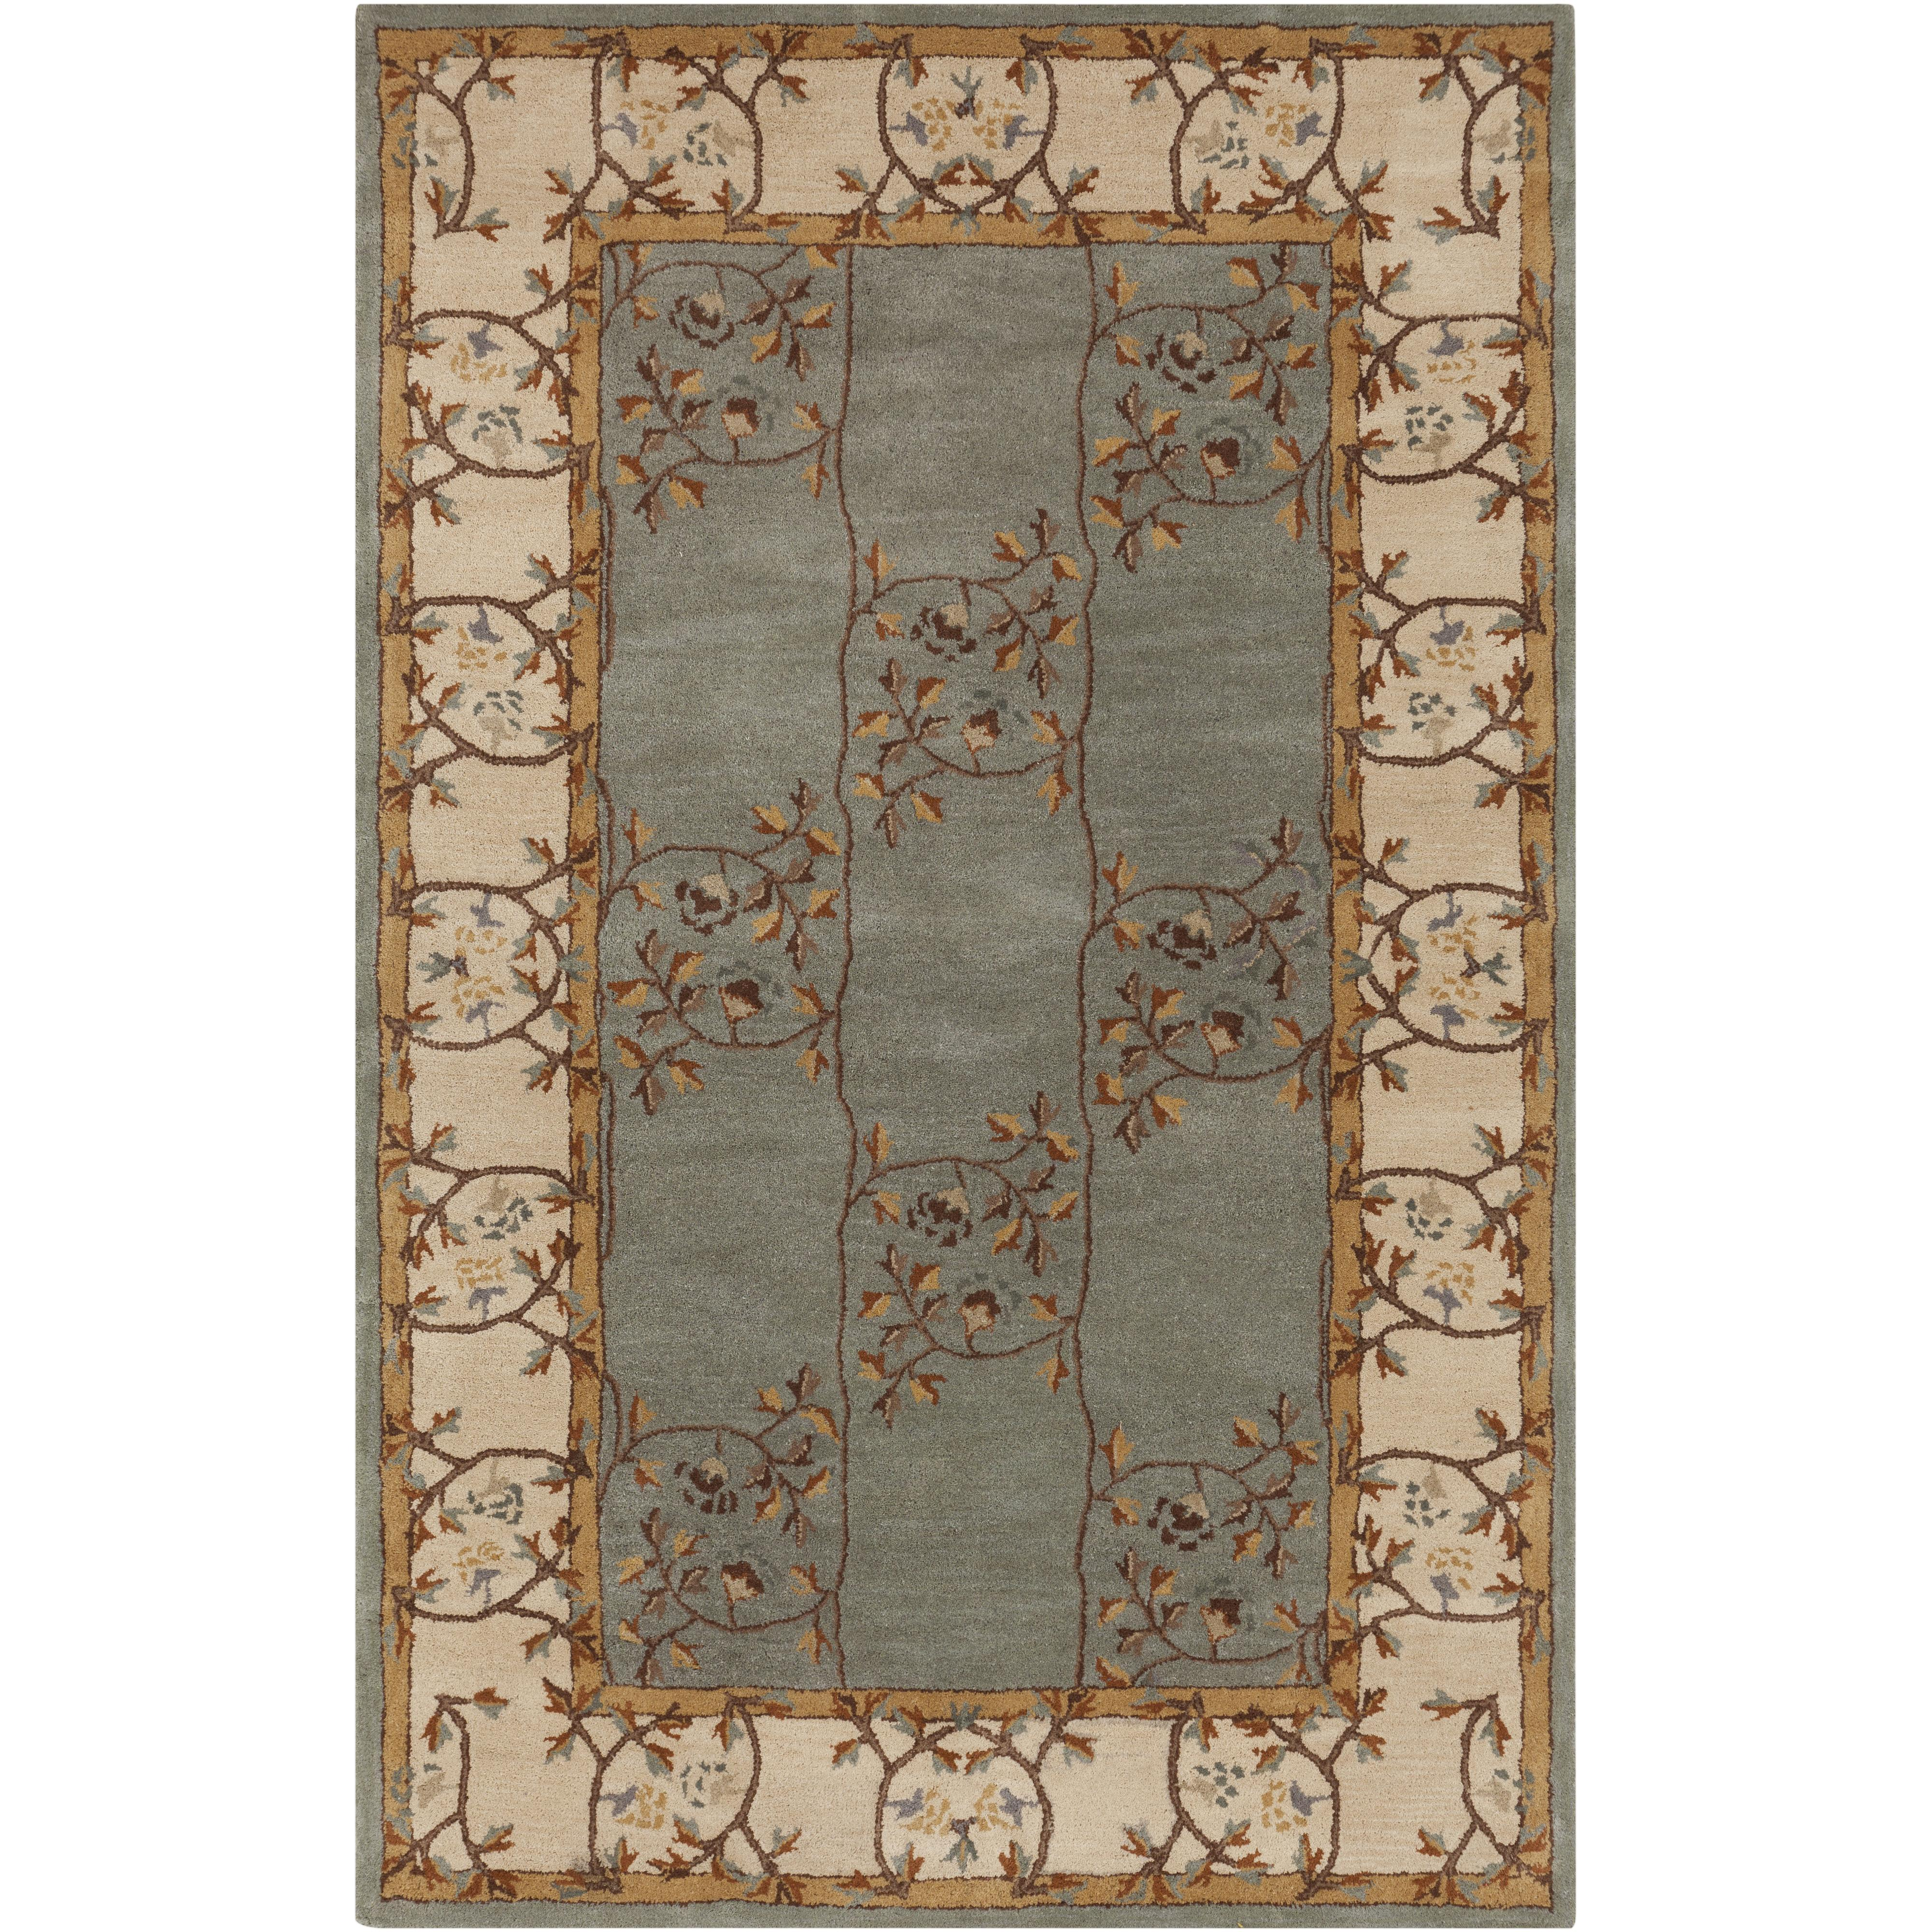 Oriental Rugs Hagerstown Md: 5' X 8' By Surya